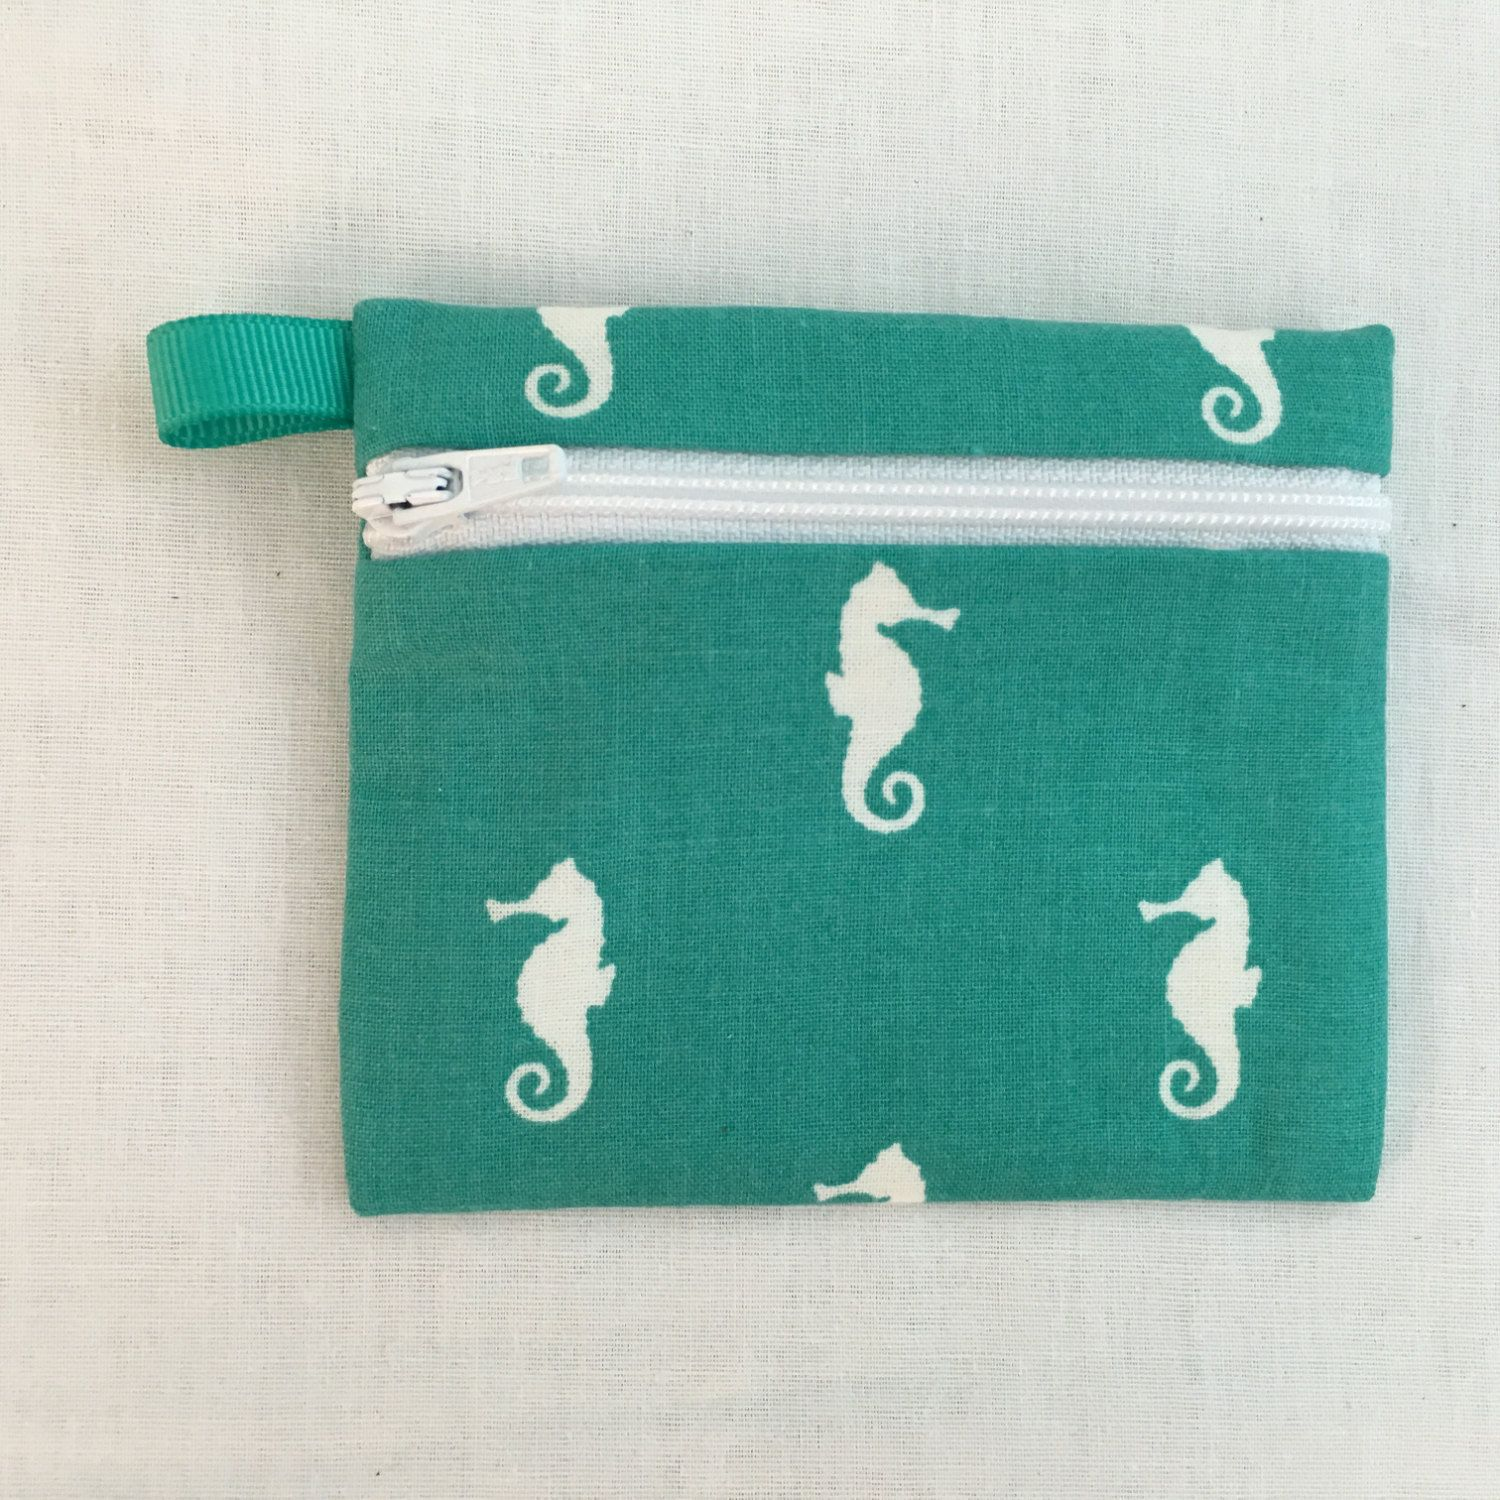 Teal Seahorse Zipper Coin Purse, Credit Card, Earbud , Music Player Pouch by…